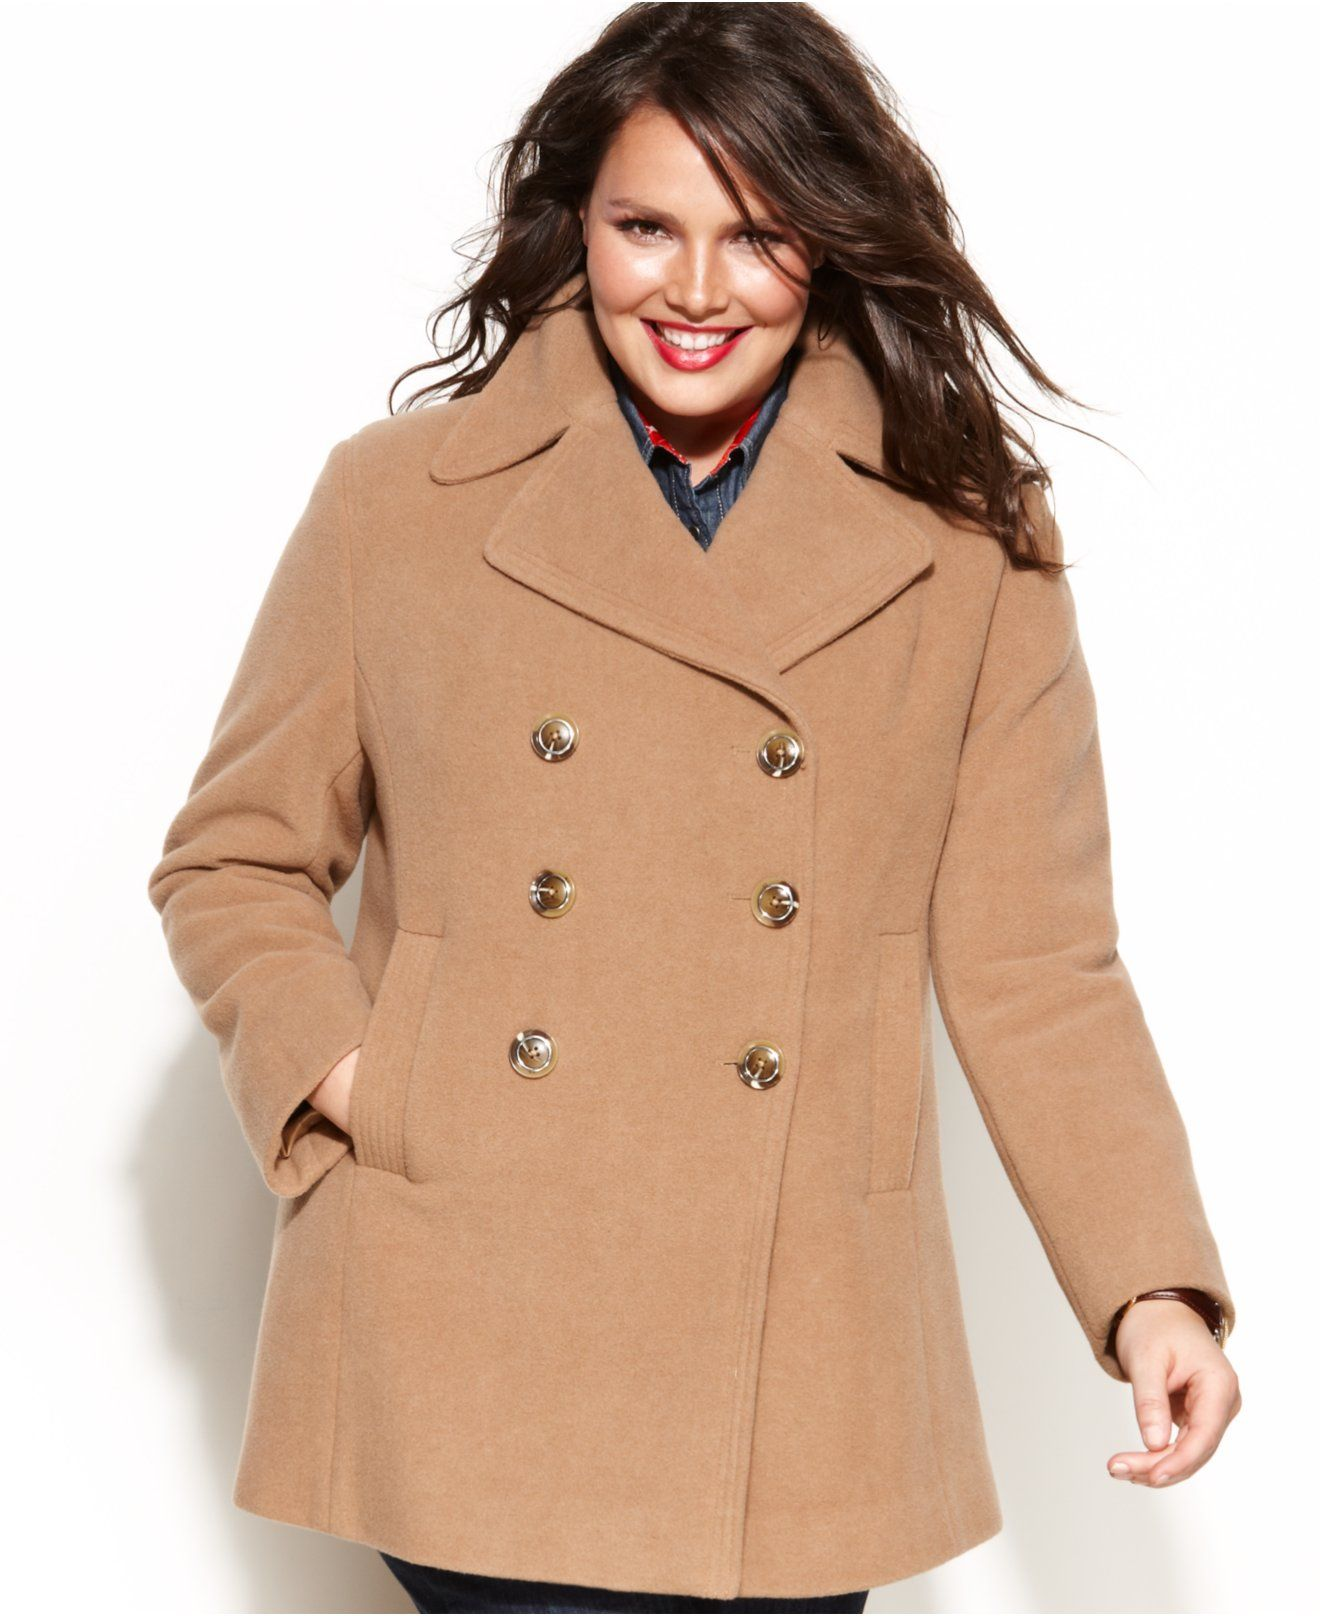 b6d33b23e0c Kenneth Cole Reaction Plus Size Double-Breasted Wool-Blend Pea Coat - Coats  - Women - Macy s